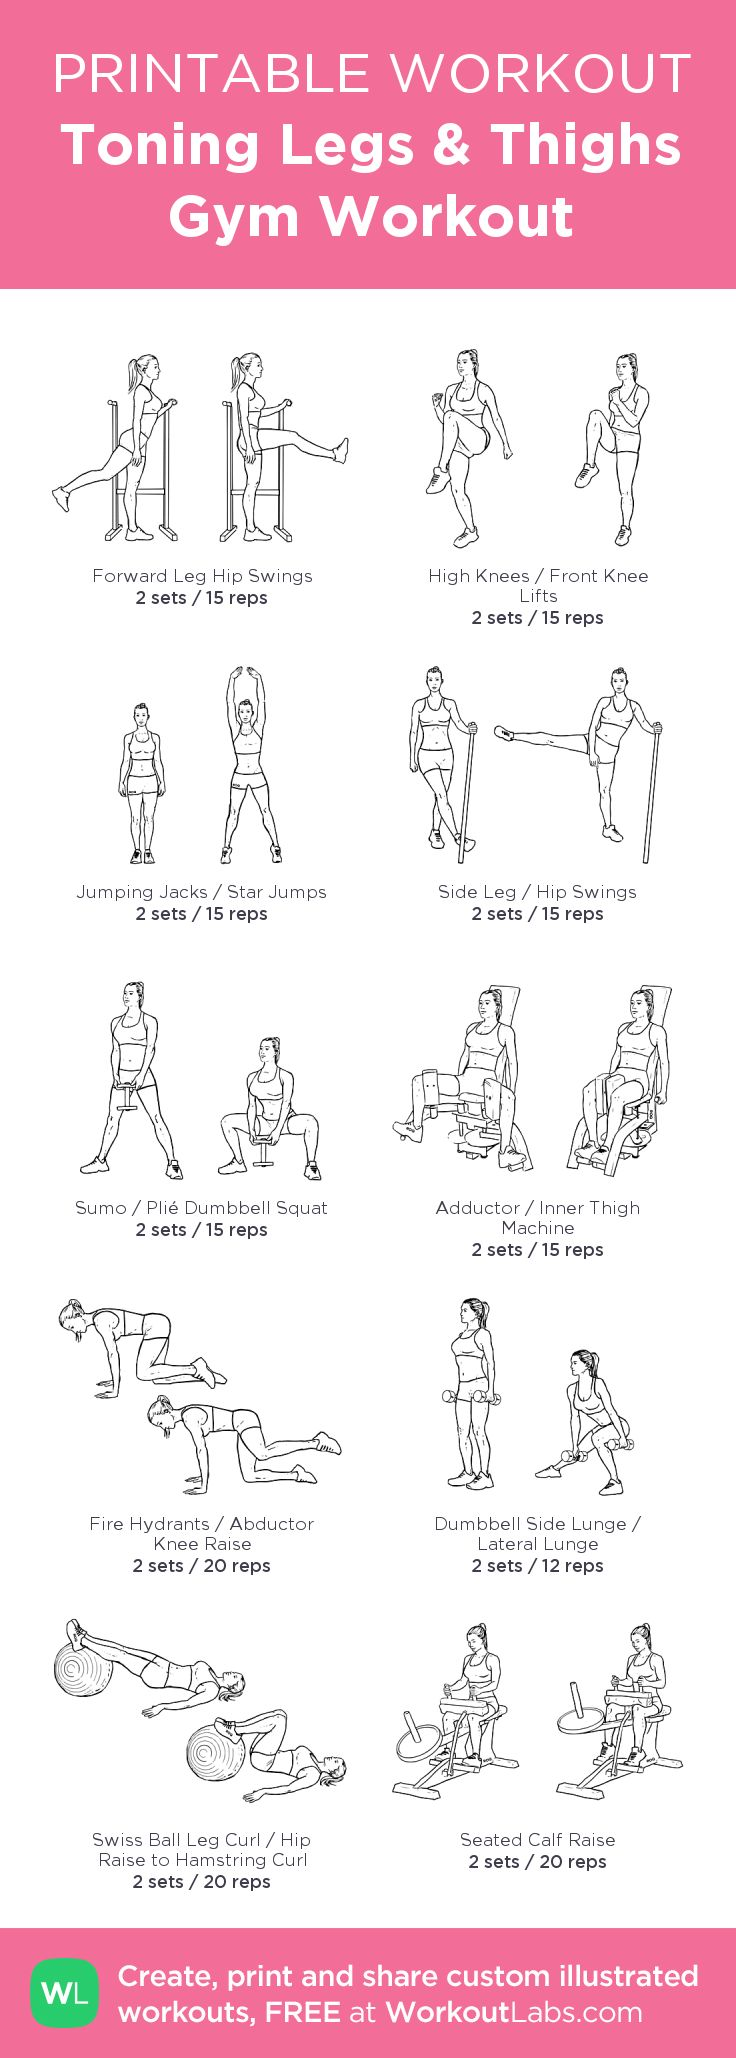 Toning Legs & Thighs Gym Workout for slimmer legs and tighter butt • Click through to customize and download as a FREE PDF! #customworkout